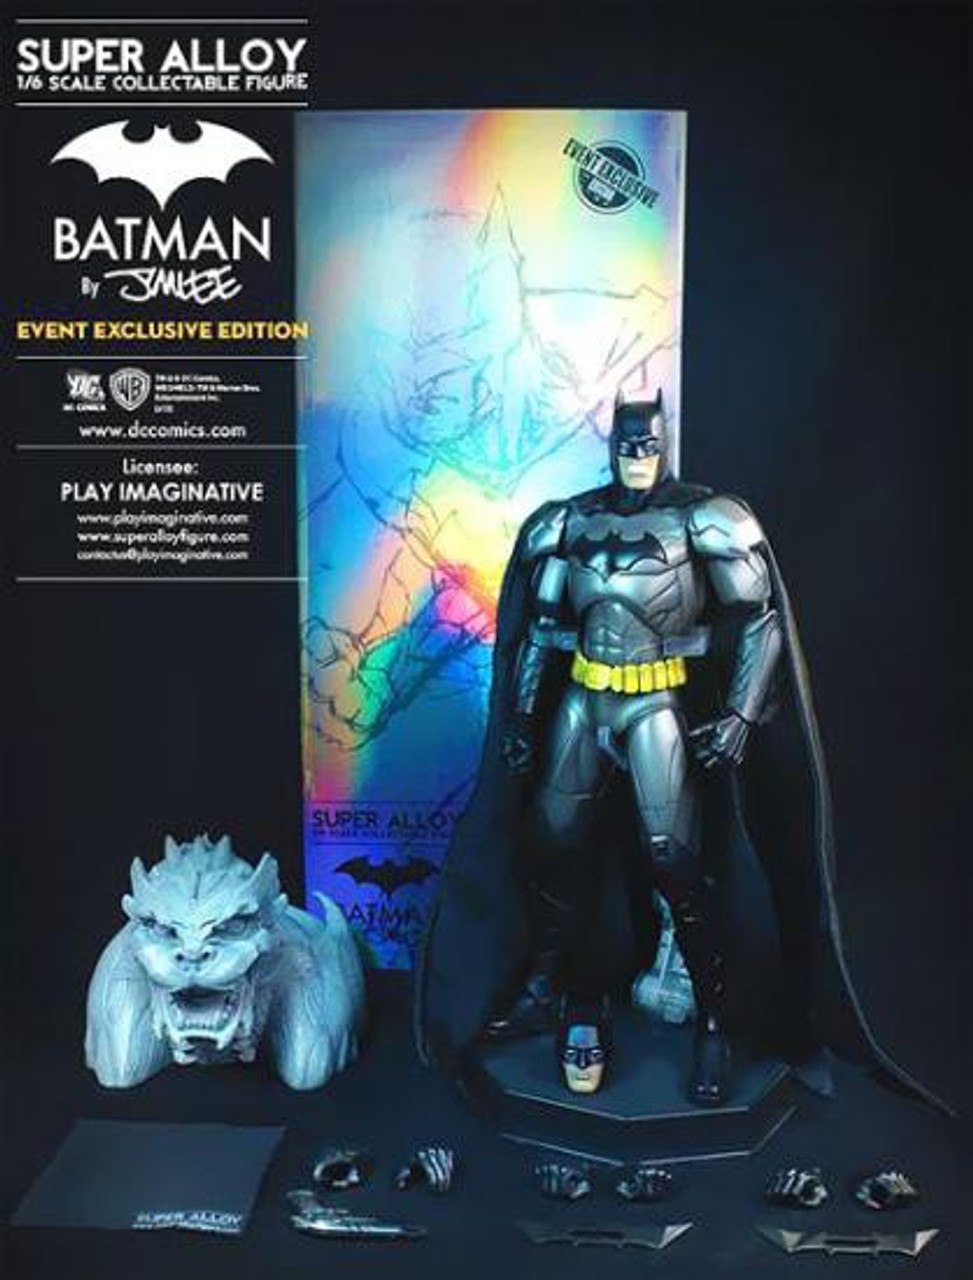 Super Alloy Diecast Batman Exclusive 1/6 Collectible Figure [Jim Lee Version, Exclusive]